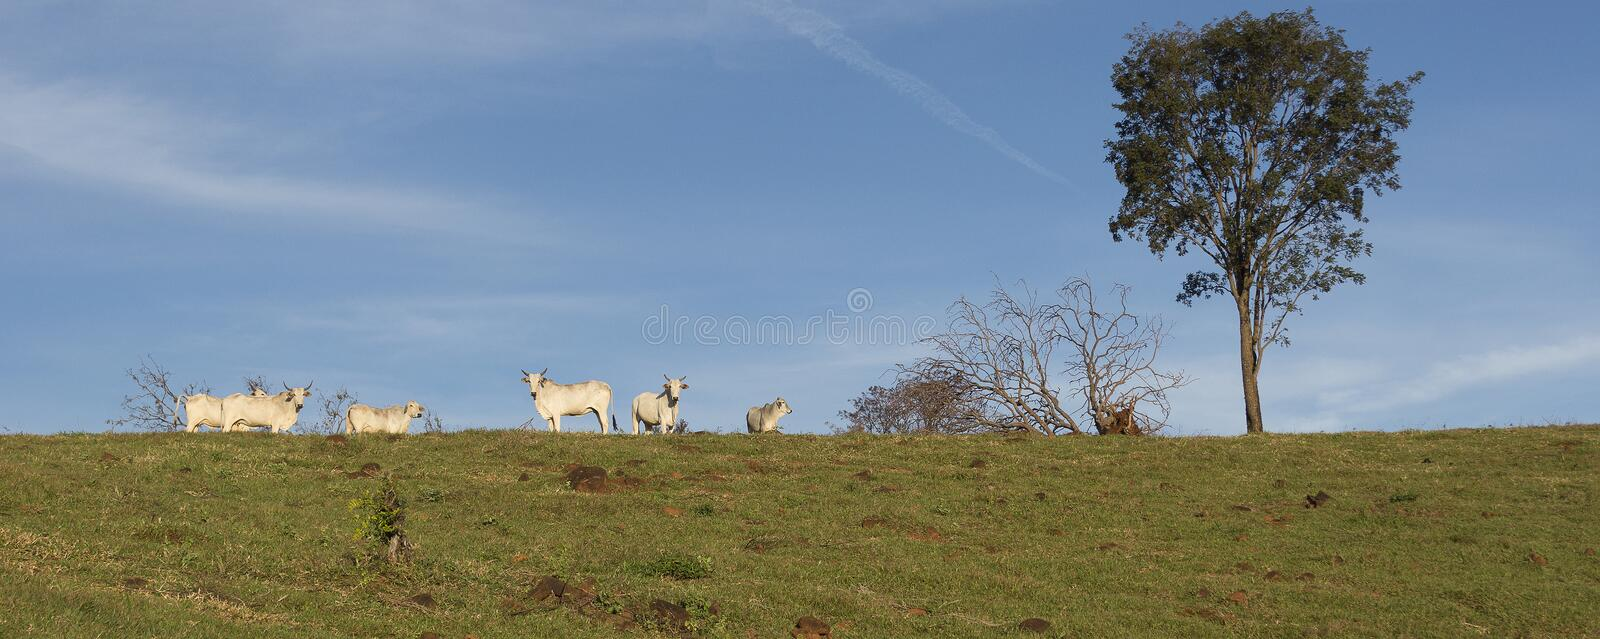 Cattle herd on the farm stock image